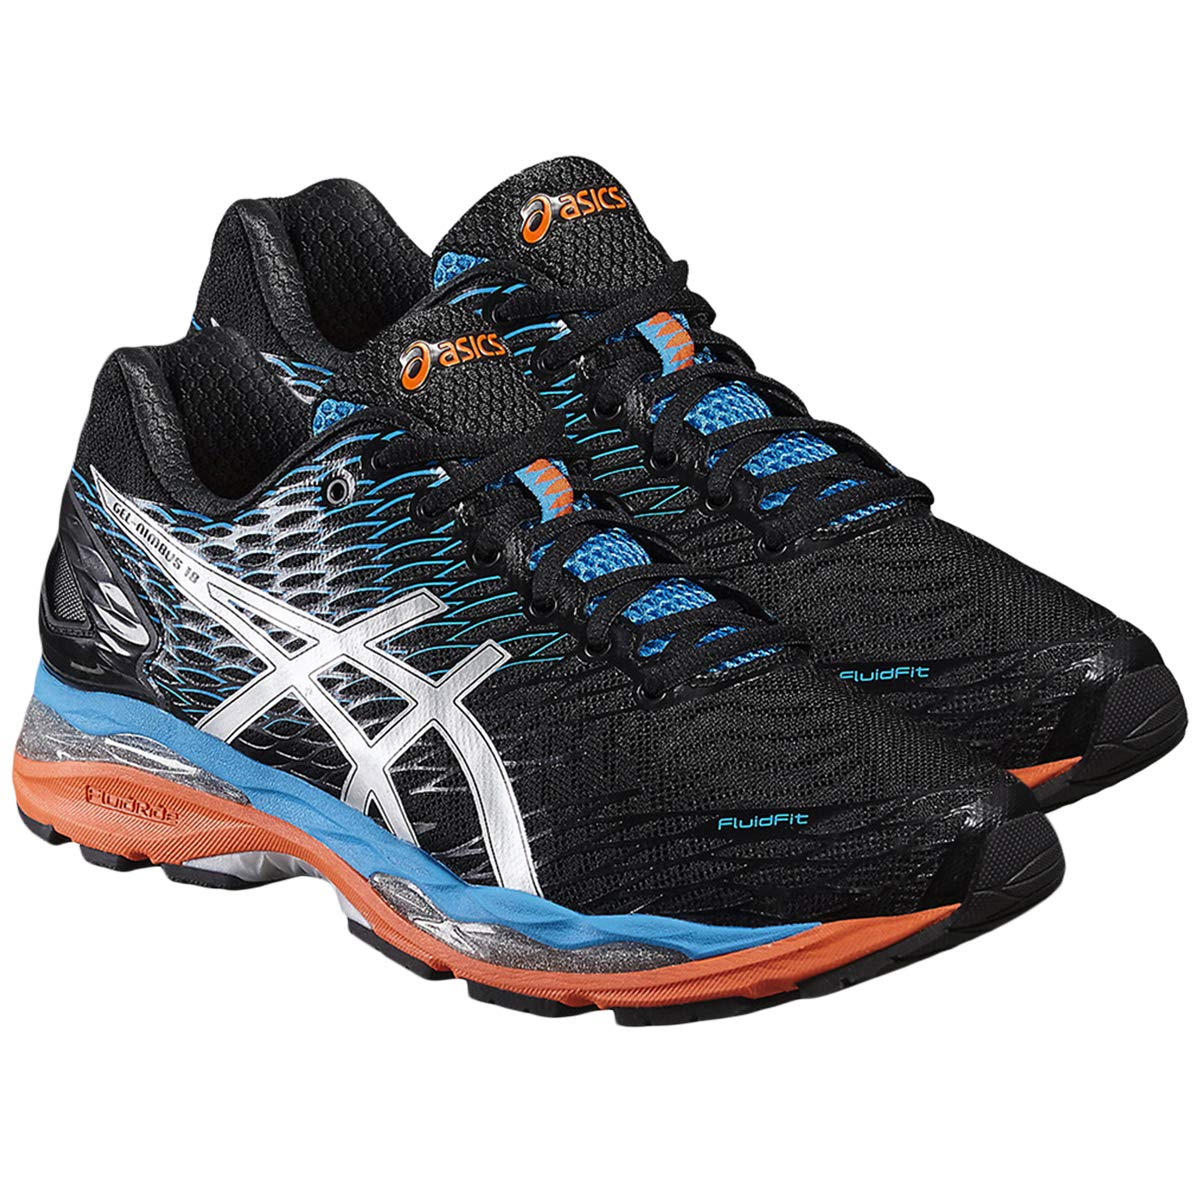 Asics Multi Color Running Shoe For Men price in UAE Amazon  Amazon